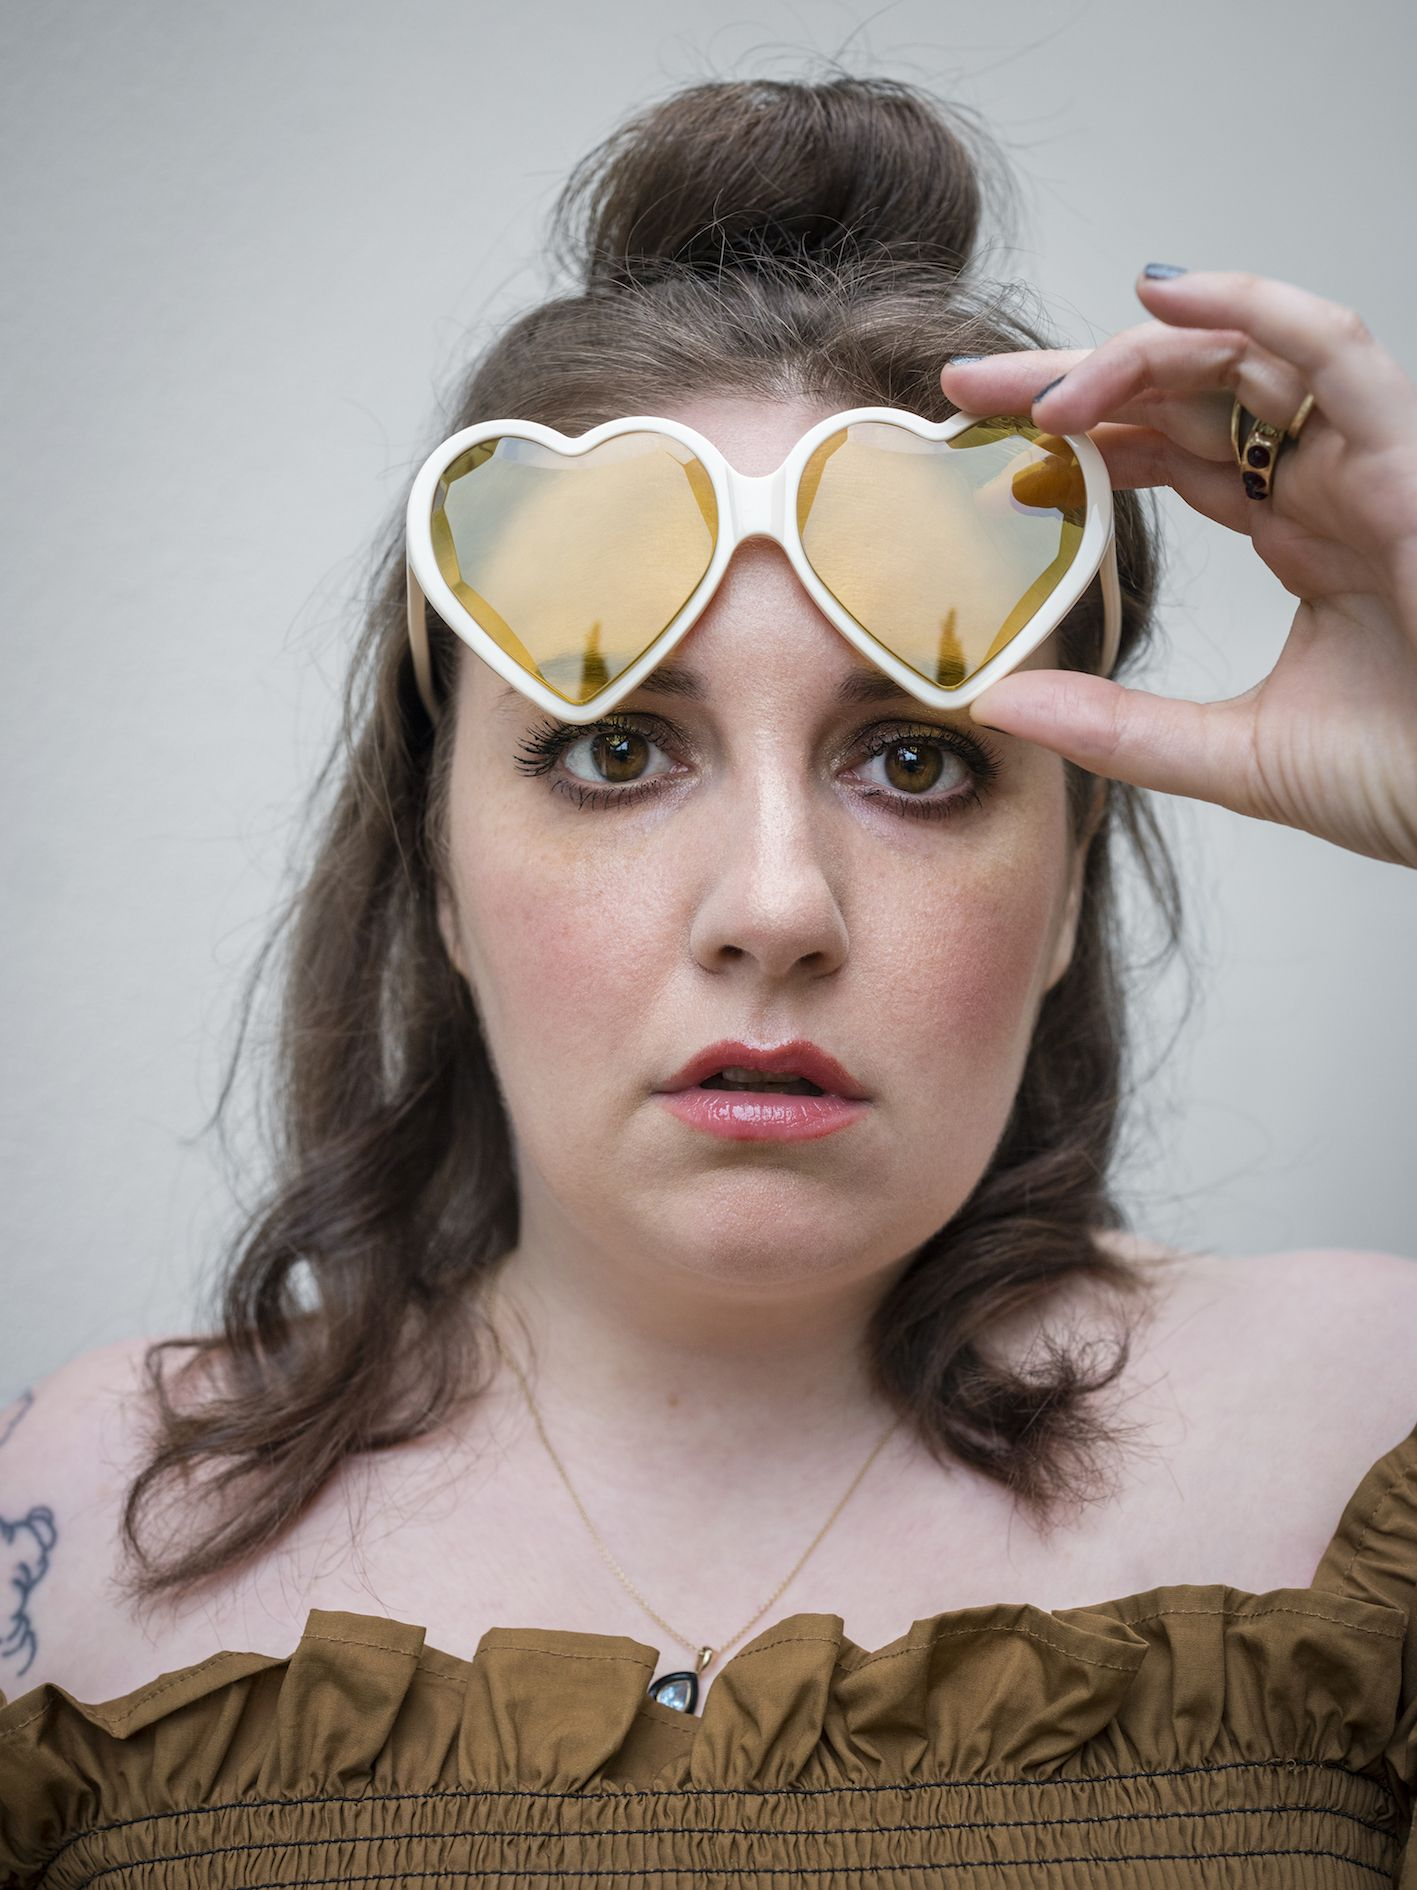 Lena Dunham Reveals The Emotional Reason Why She Kept A Food Diary While Living In The UK